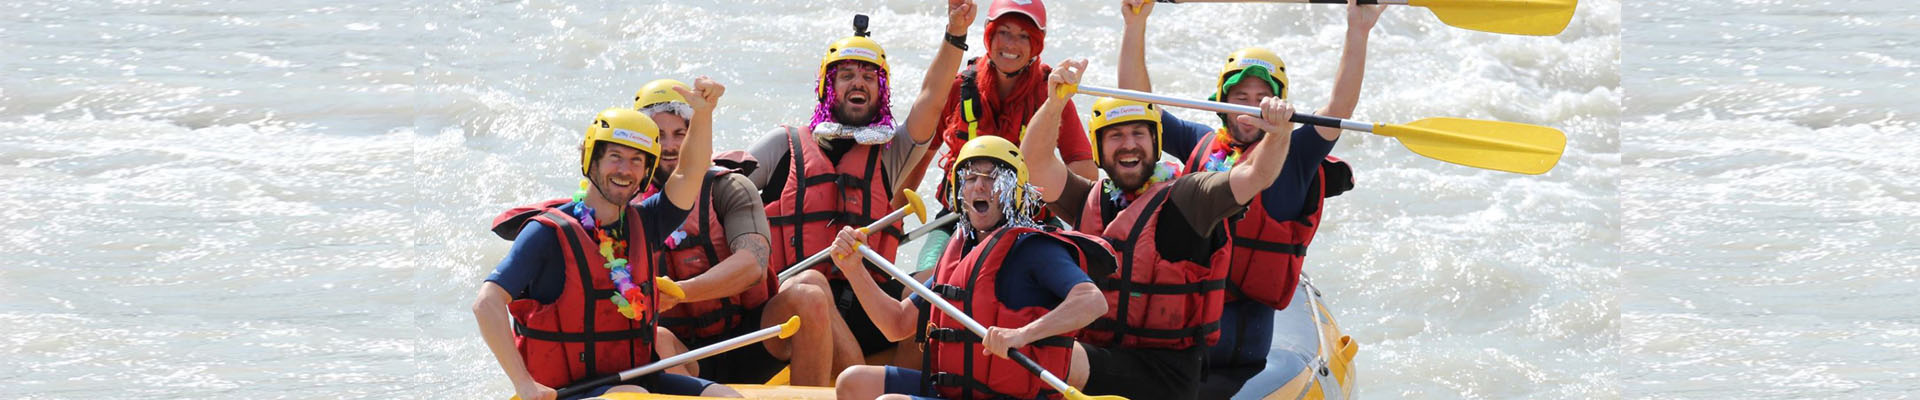 Bachelor Party Boy Rafting